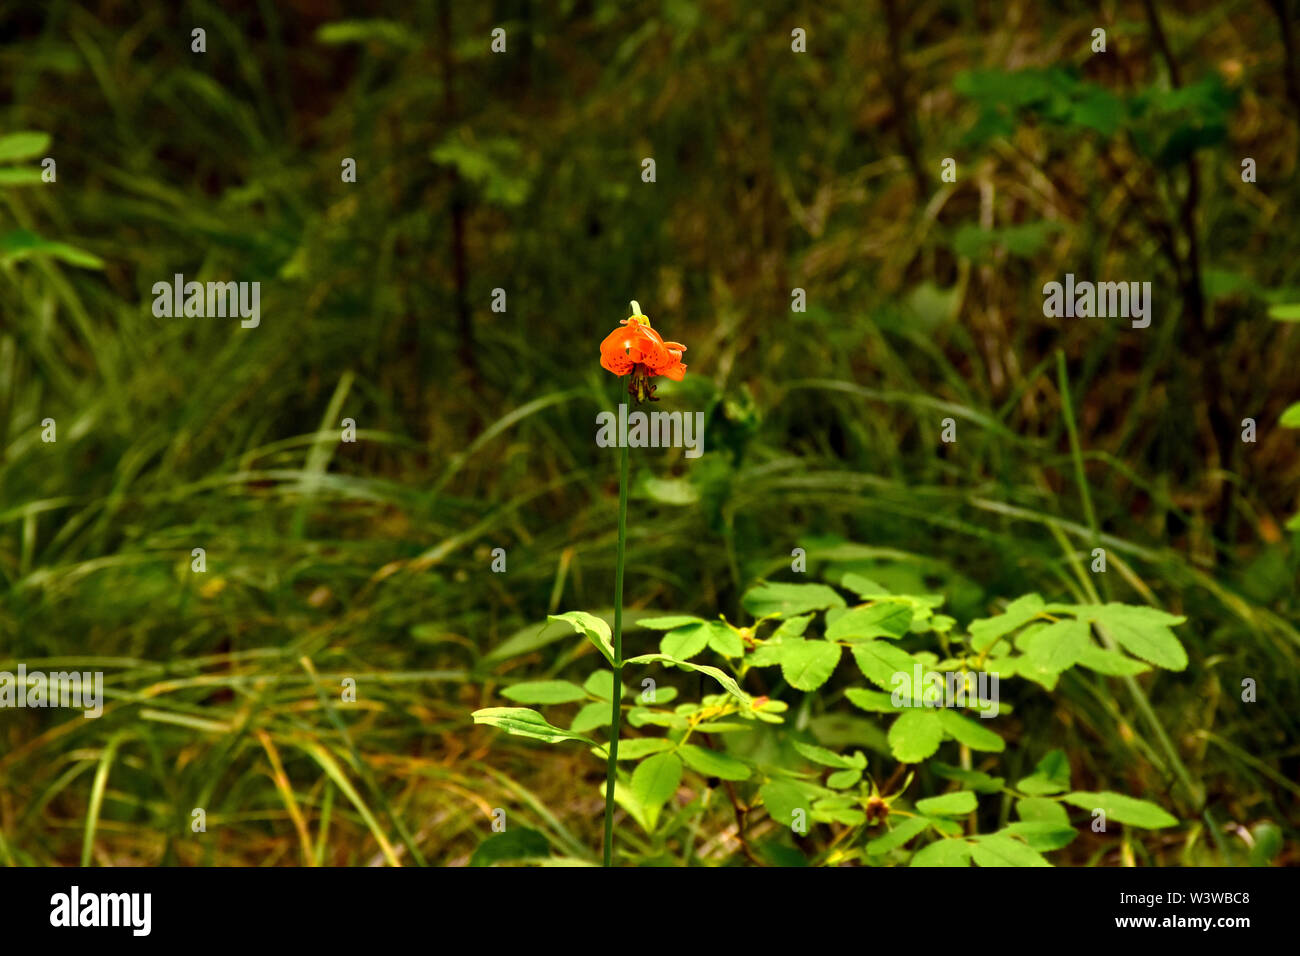 Beautiful plants and flowers of the forest. Stock Photo